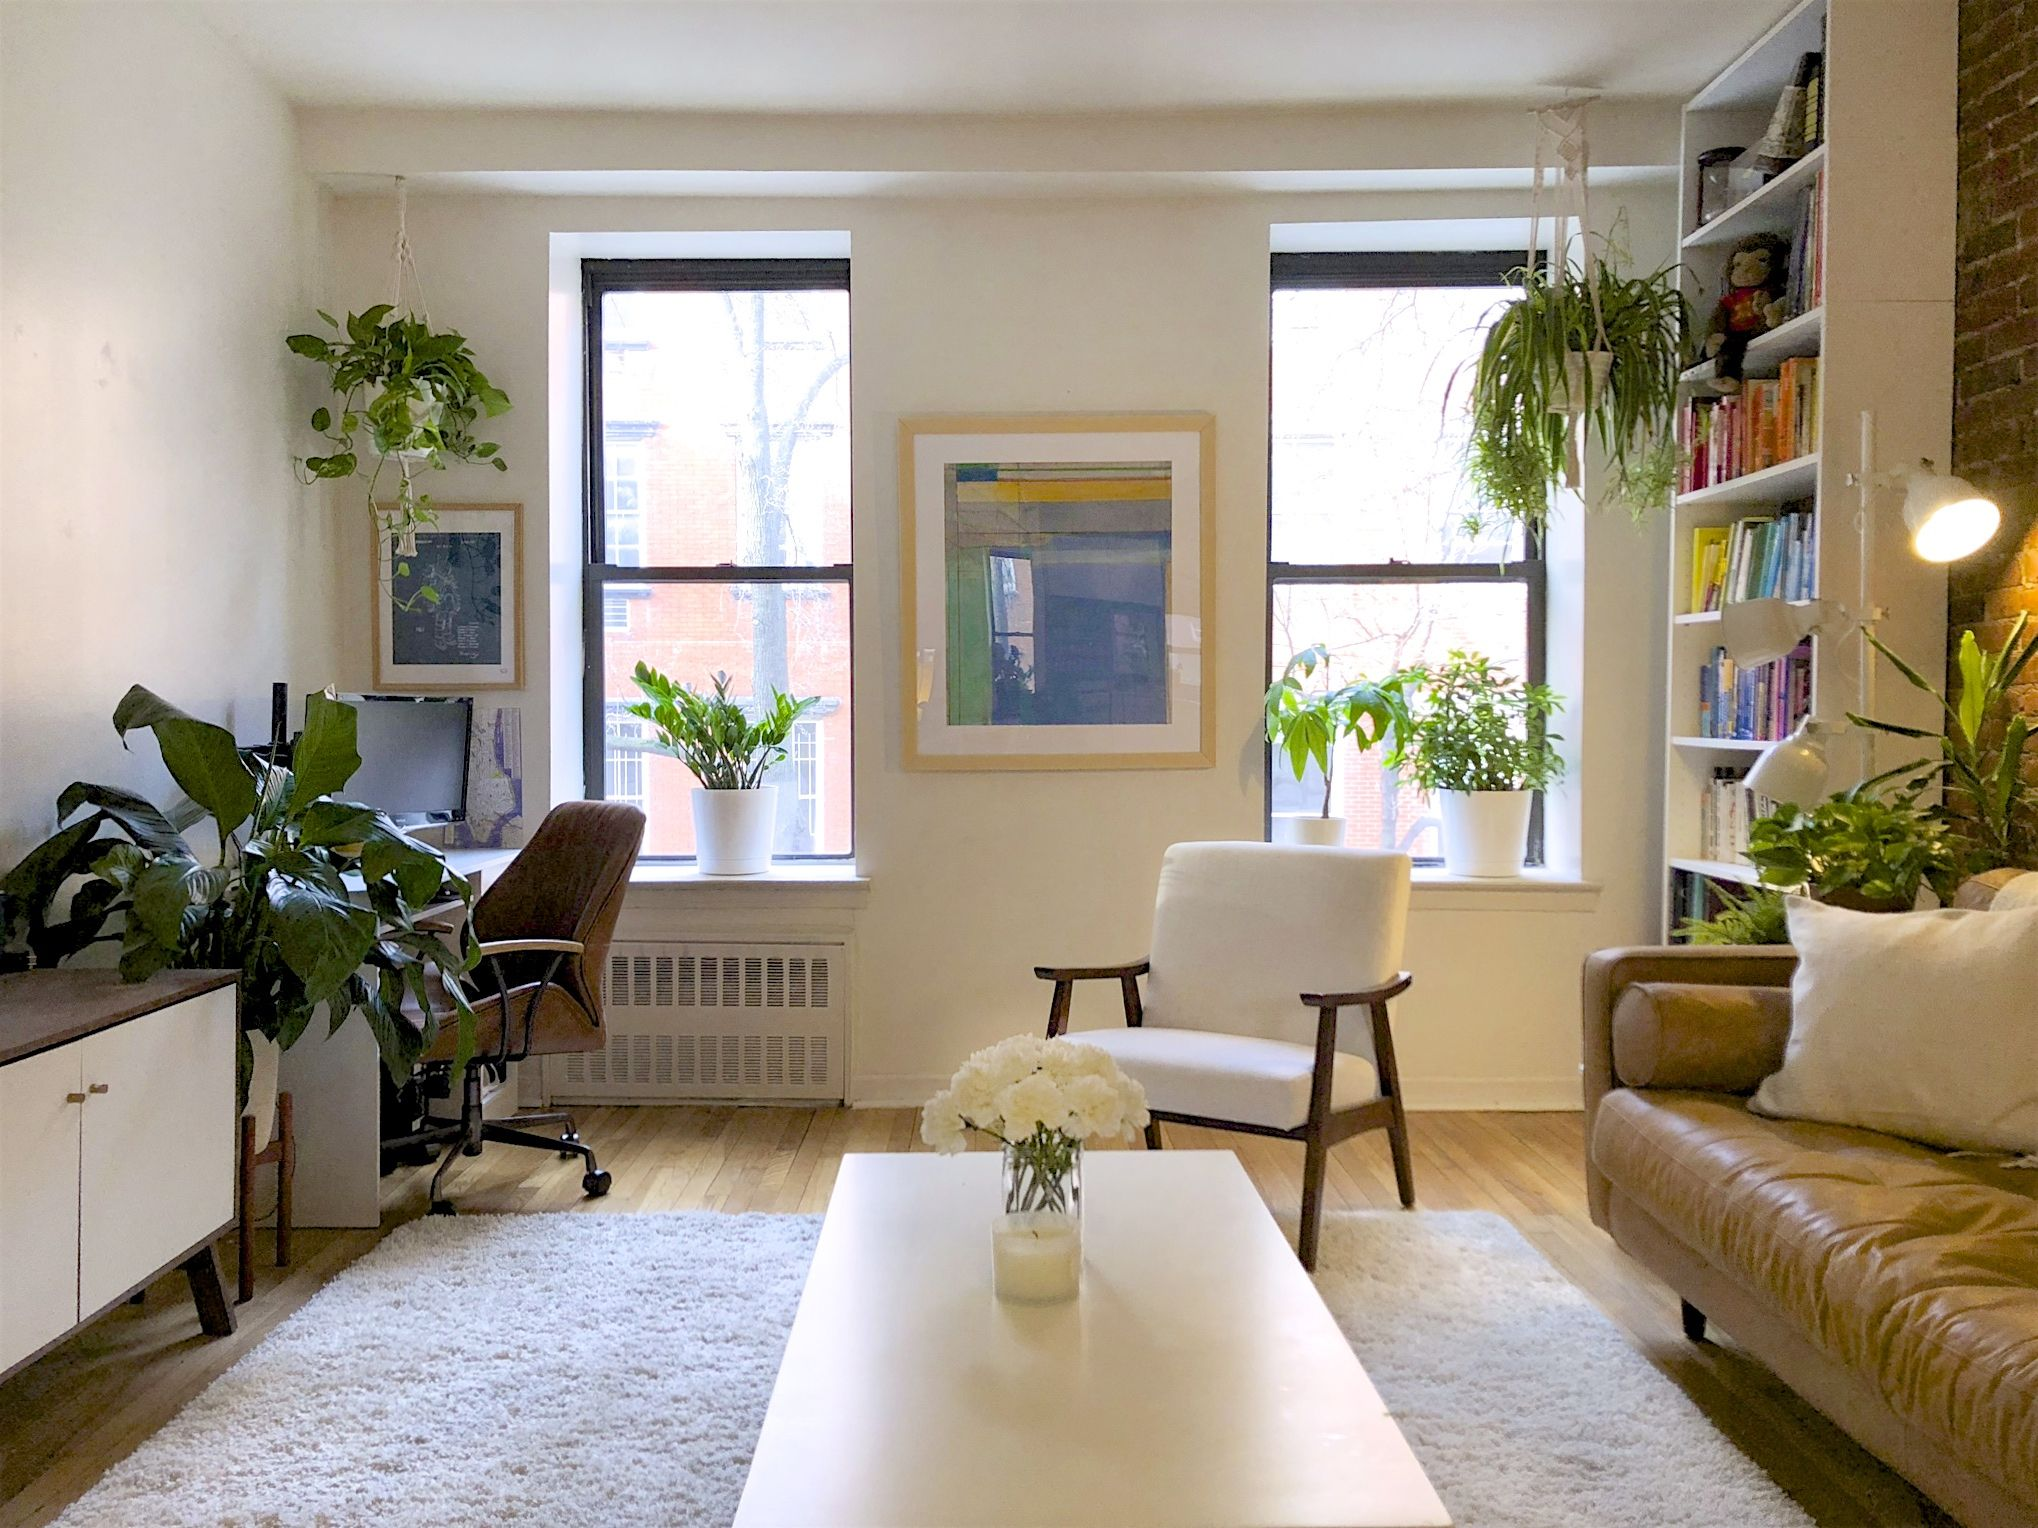 A Small Nyc Apartment Has The Cutest Simple Plant Display Above The Bed Tiny Living Rooms Desk In Living Room Nyc Apartment #studio #apartment #living #room